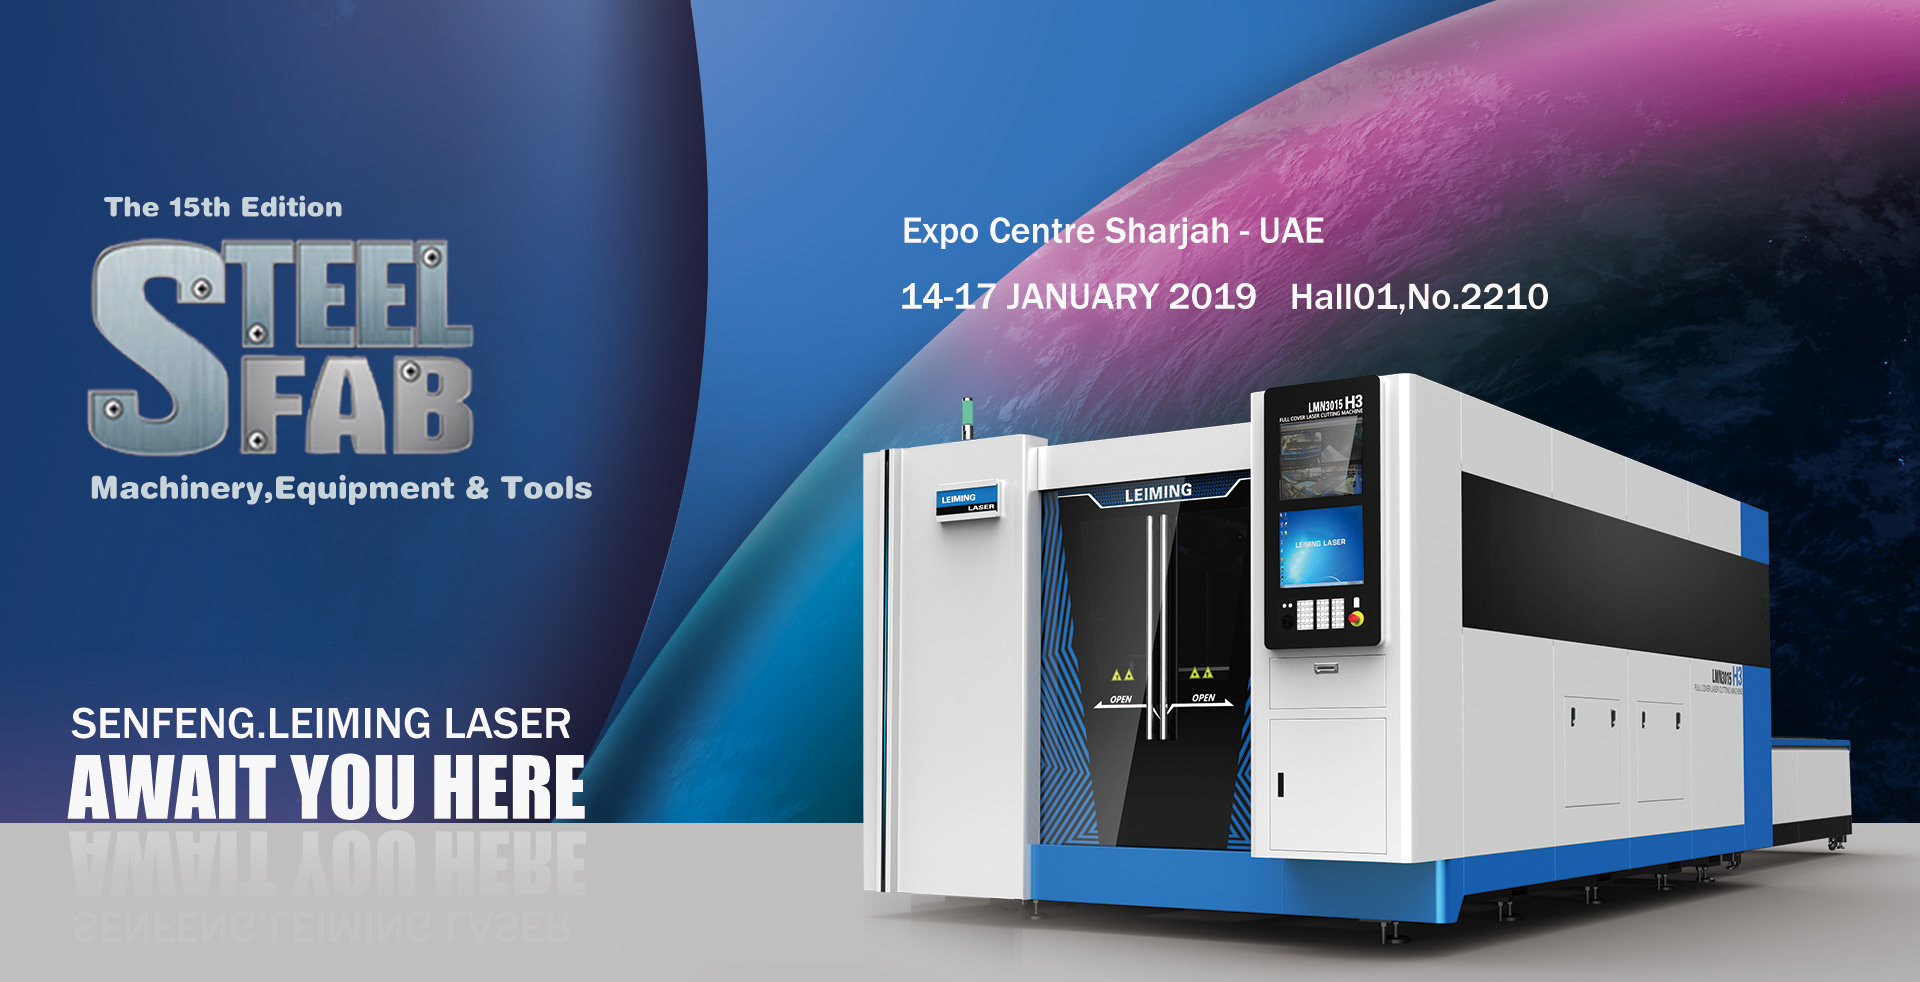 Visit SENFENG.LEIMING LASER at SteelFeb 2019